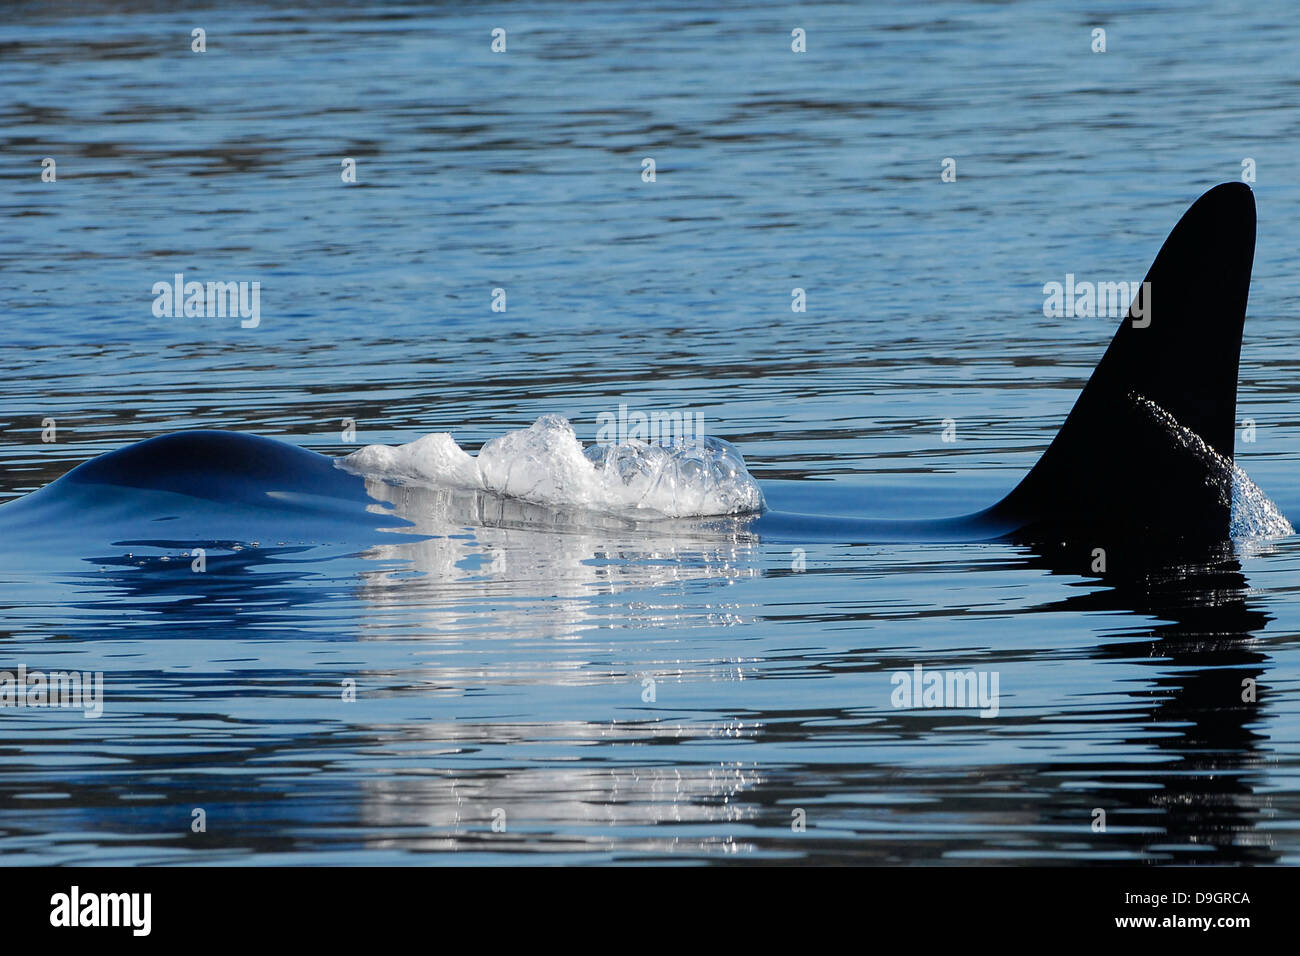 a male killer whale surfaces - Stock Image